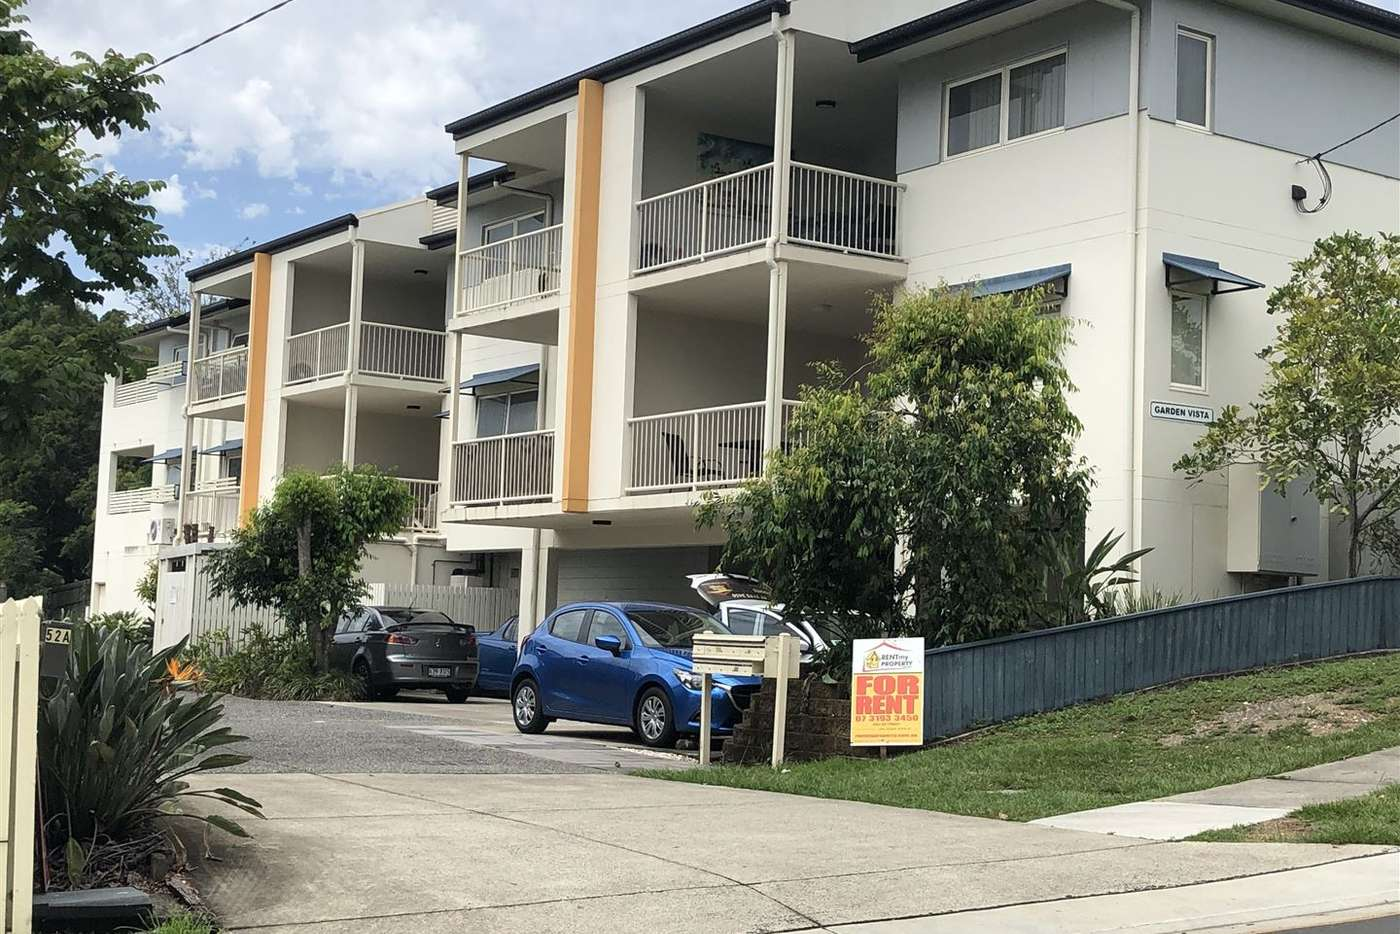 Main view of Homely apartment listing, 7/309 Enoggera Rd, Newmarket QLD 4051